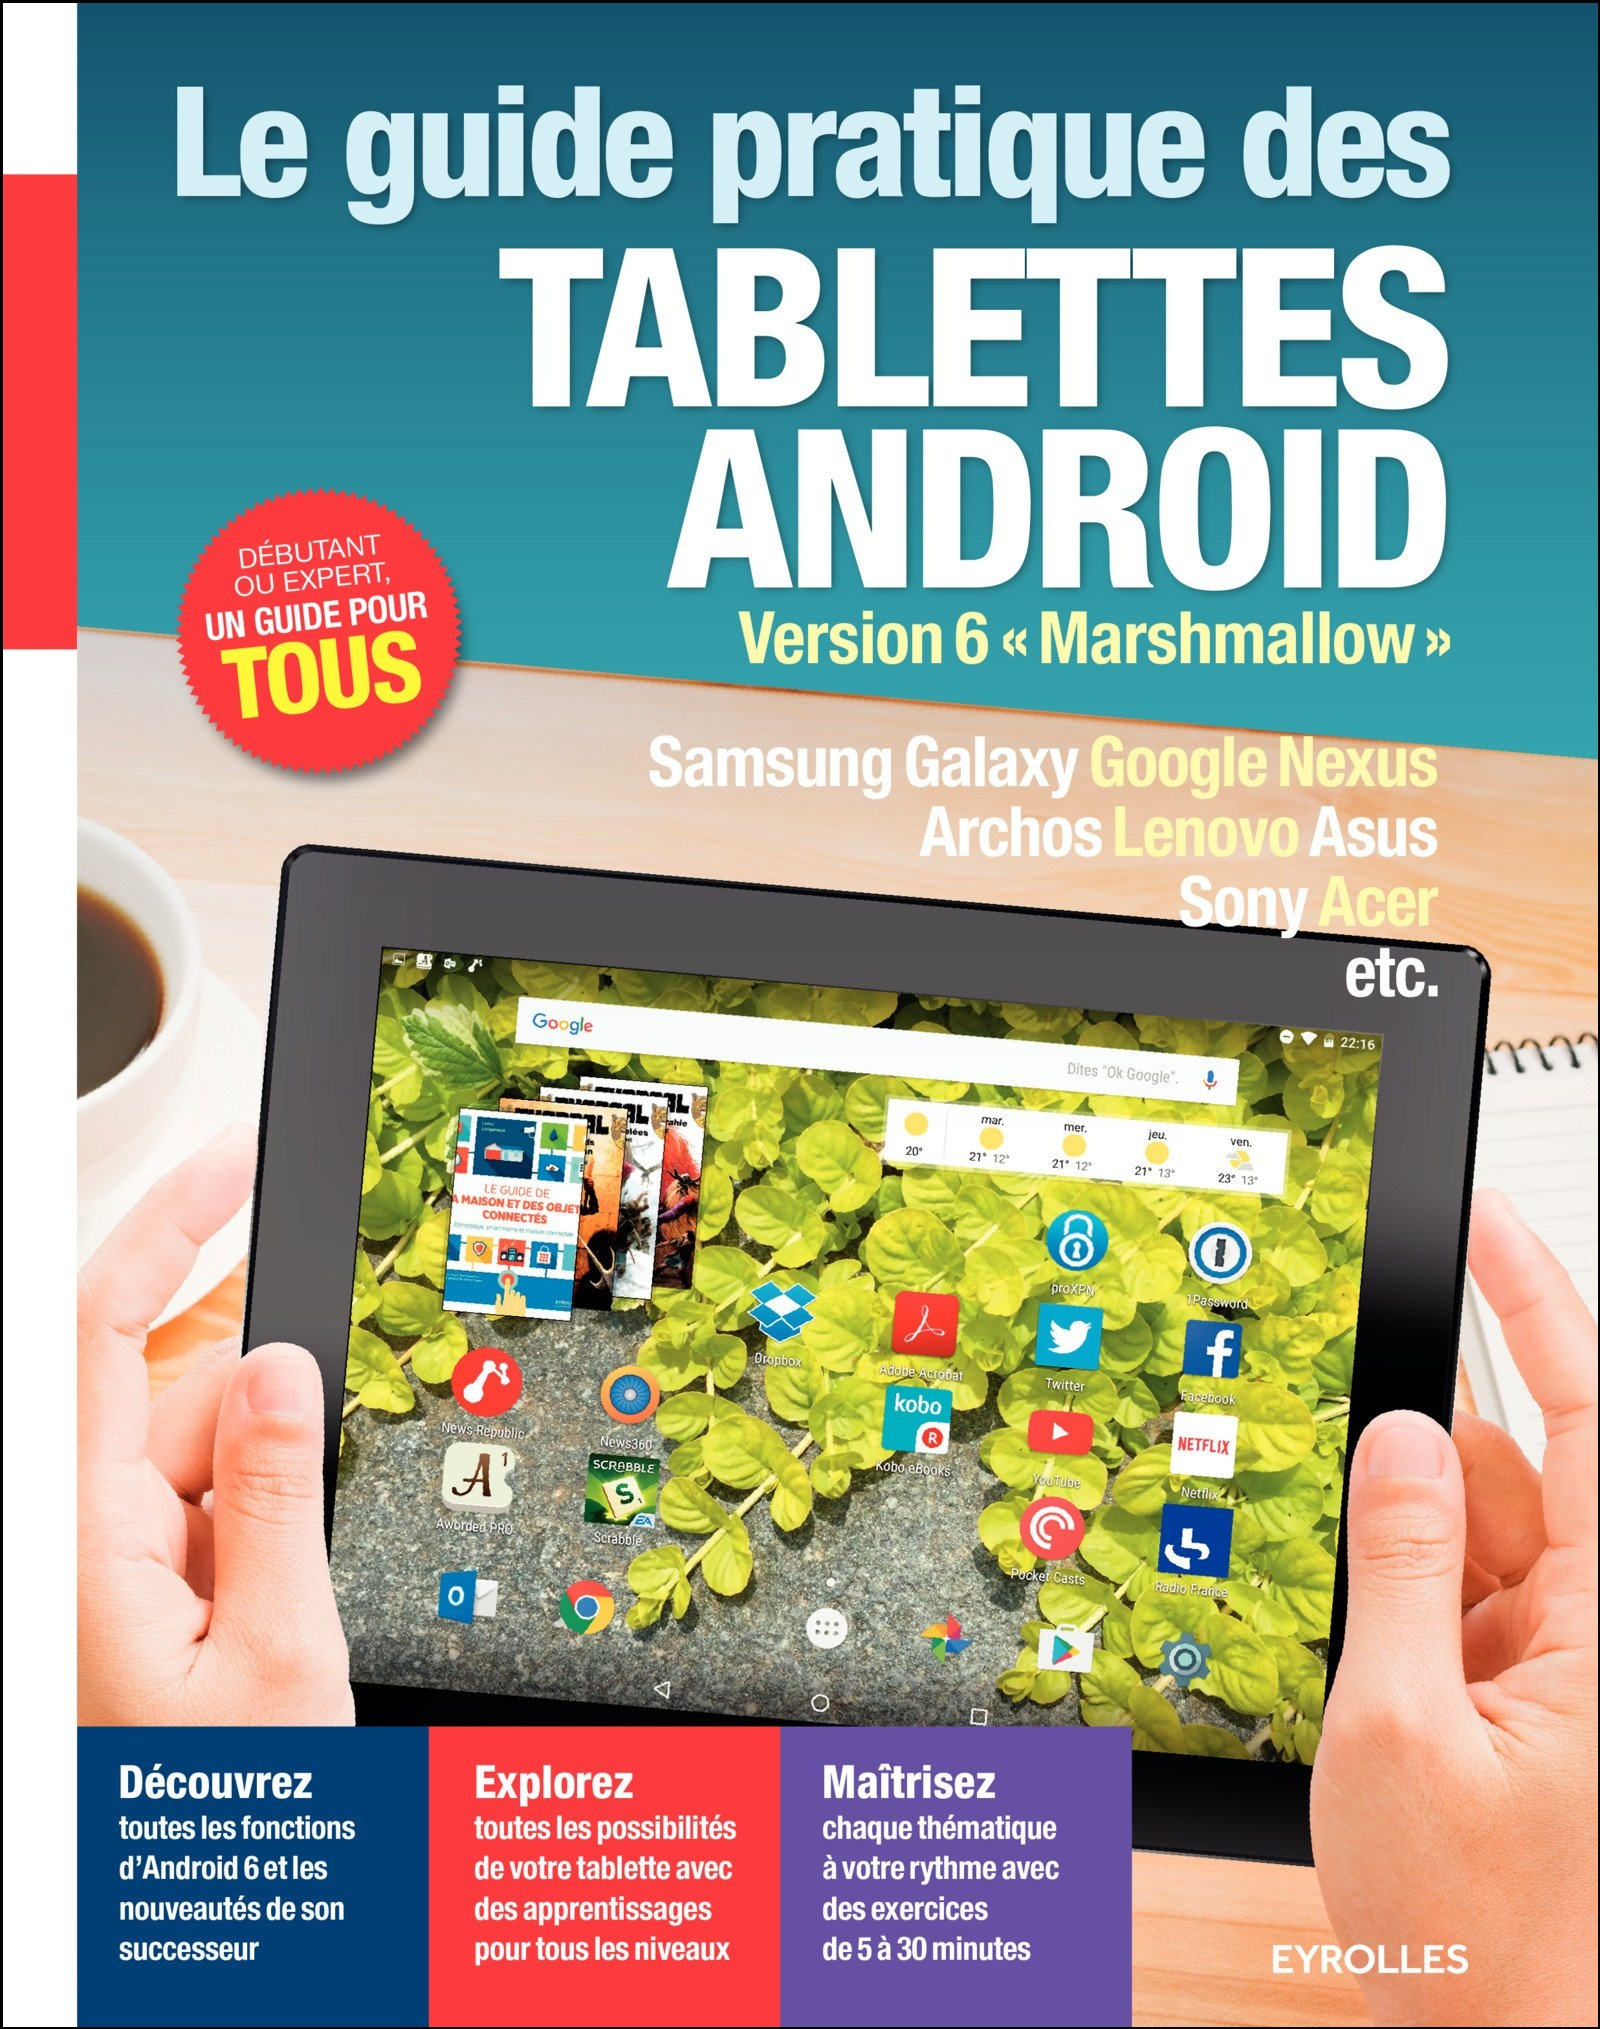 Le guide pratique des tablettes android : Version 6 Marshmallow